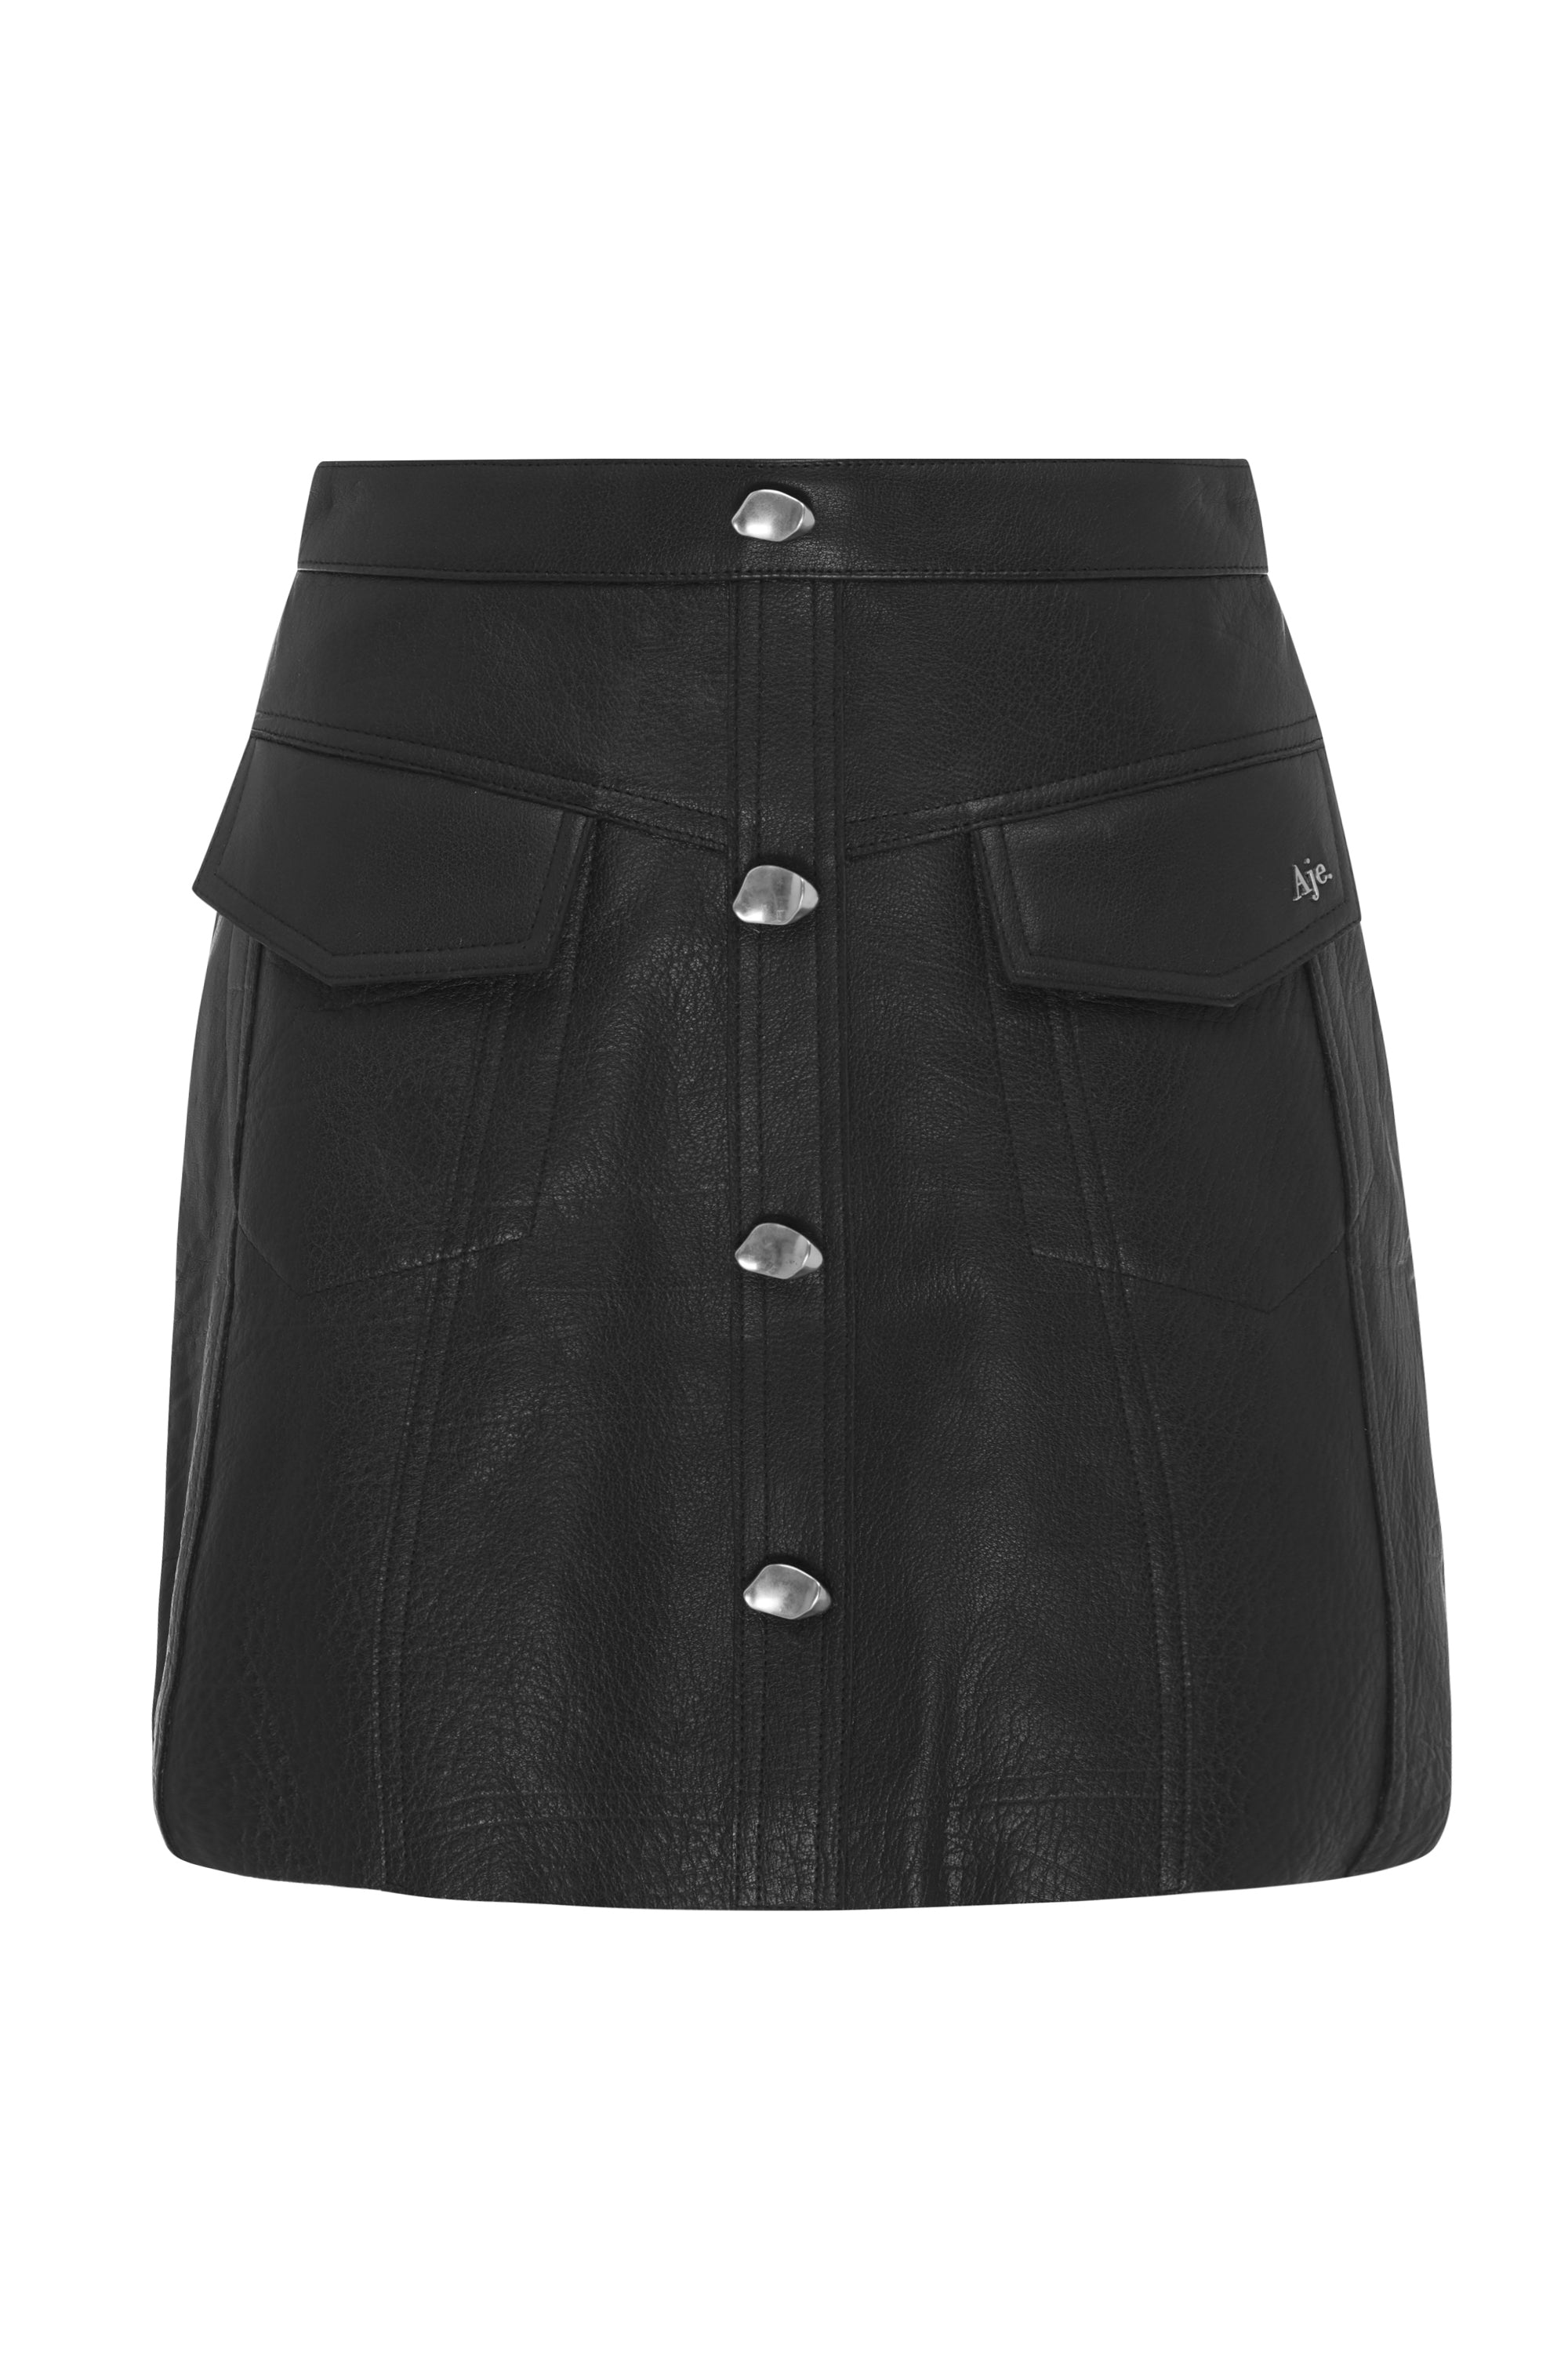 Mira Skirt Product View